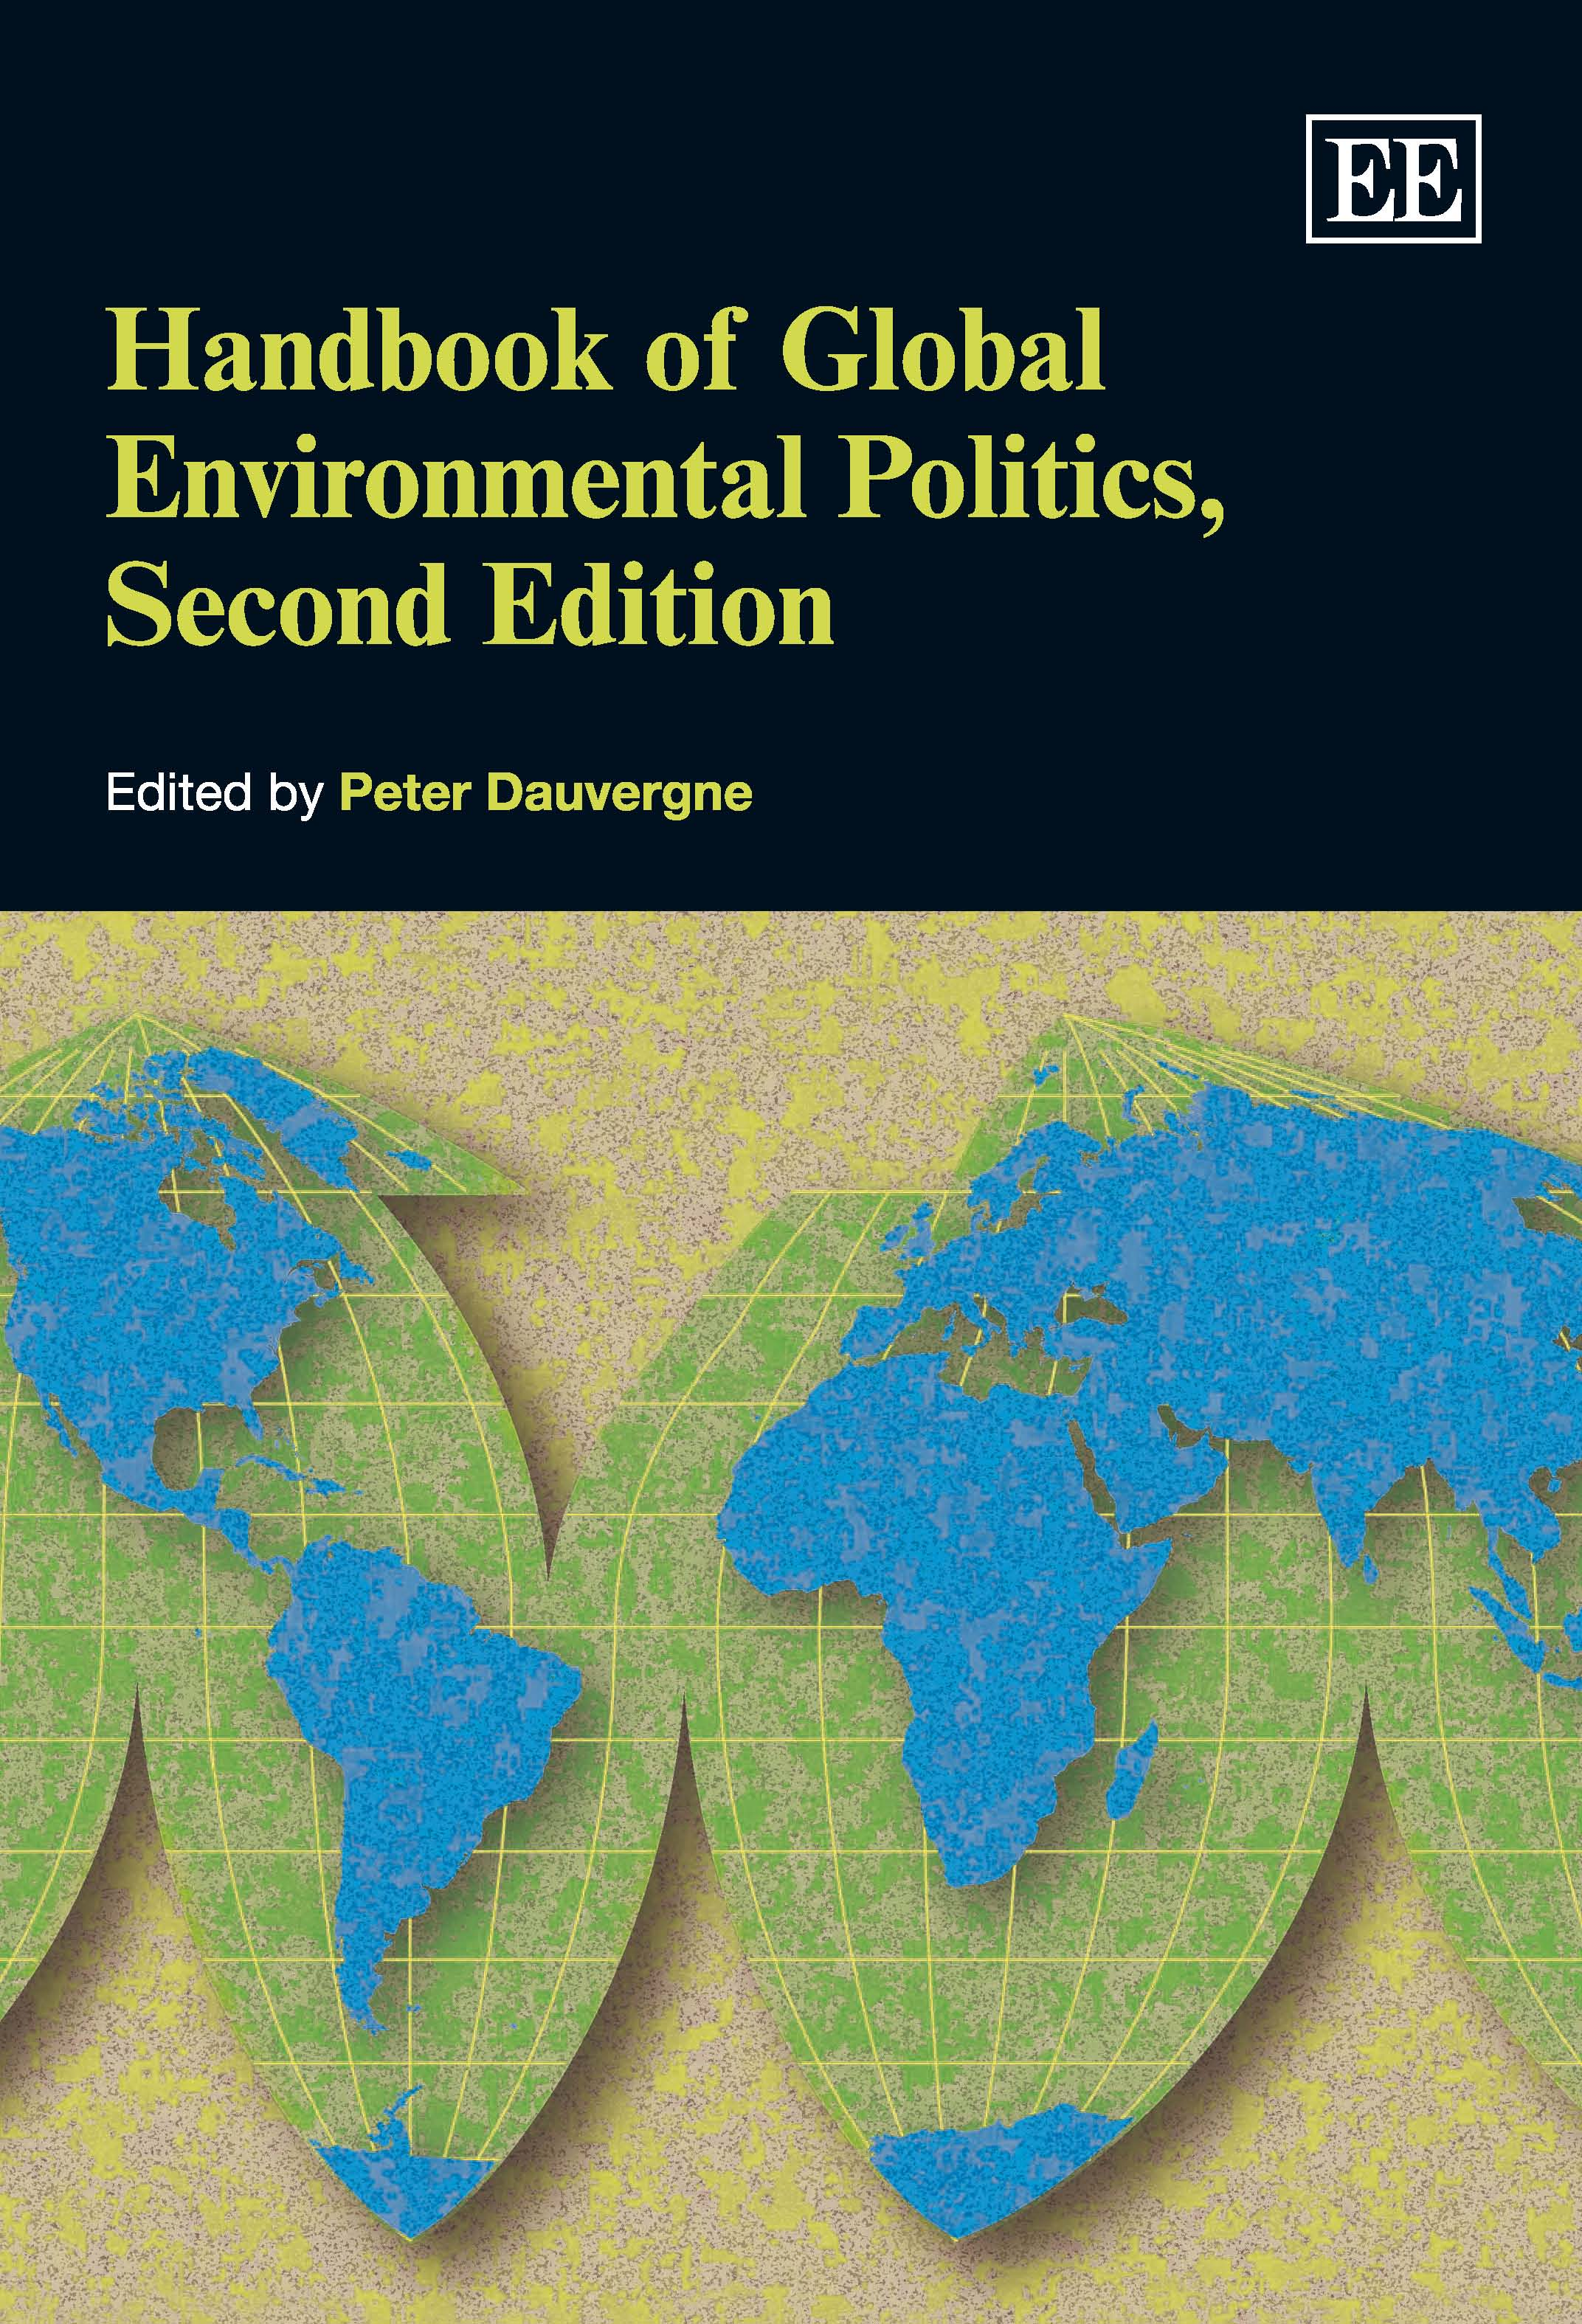 Handbook of Global Environmental Politics, Second Edition